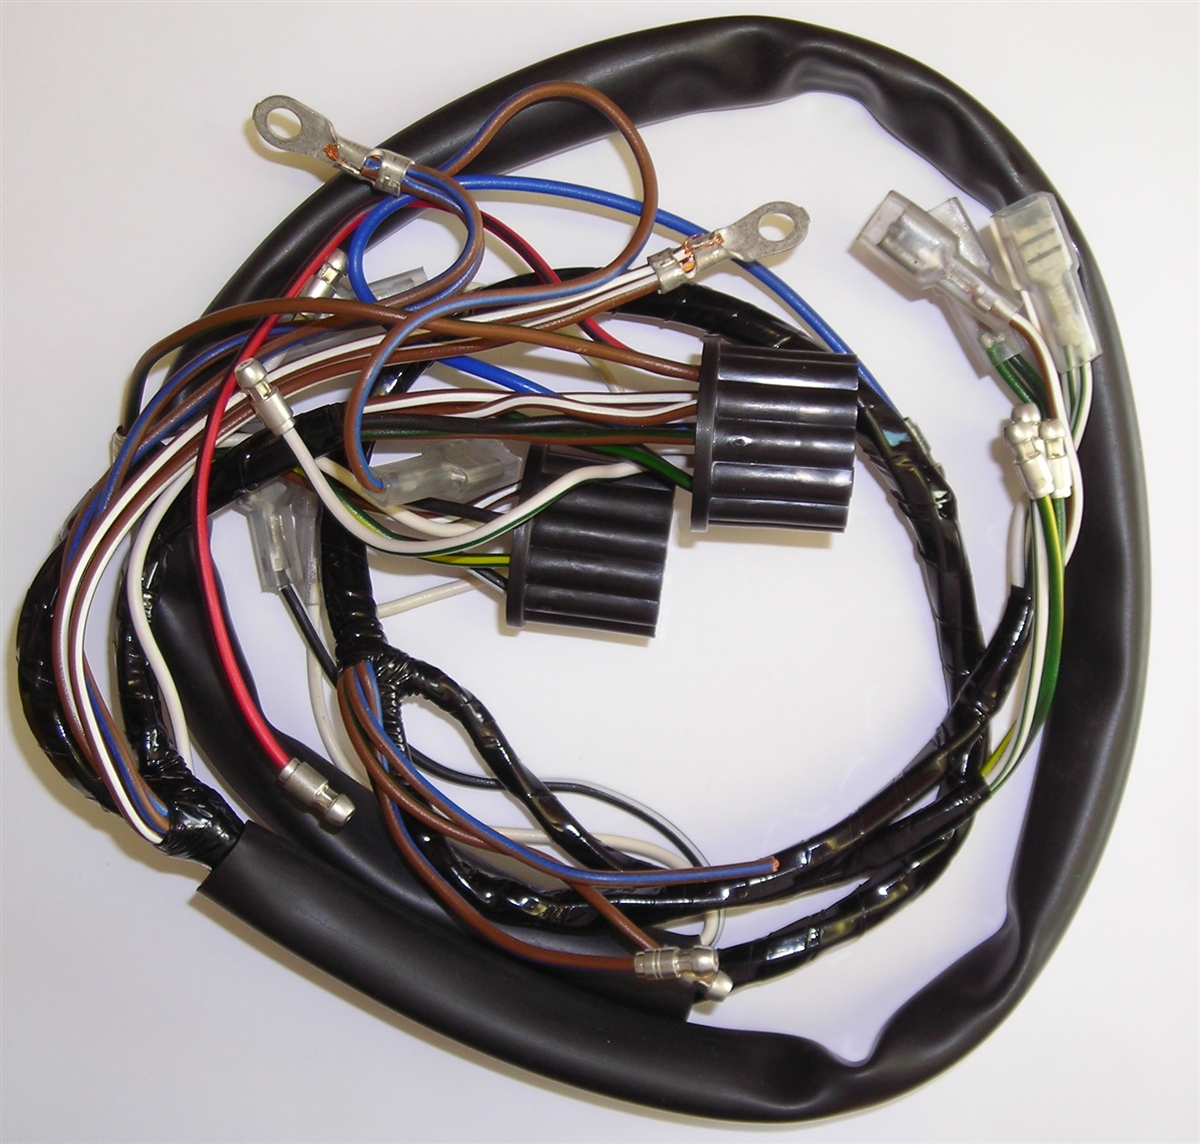 triumph motorcycle wiring harness rh britishwiring com motorcycle wiring harness connectors motorcycle wiring harness rebuilders [ 1200 x 1144 Pixel ]